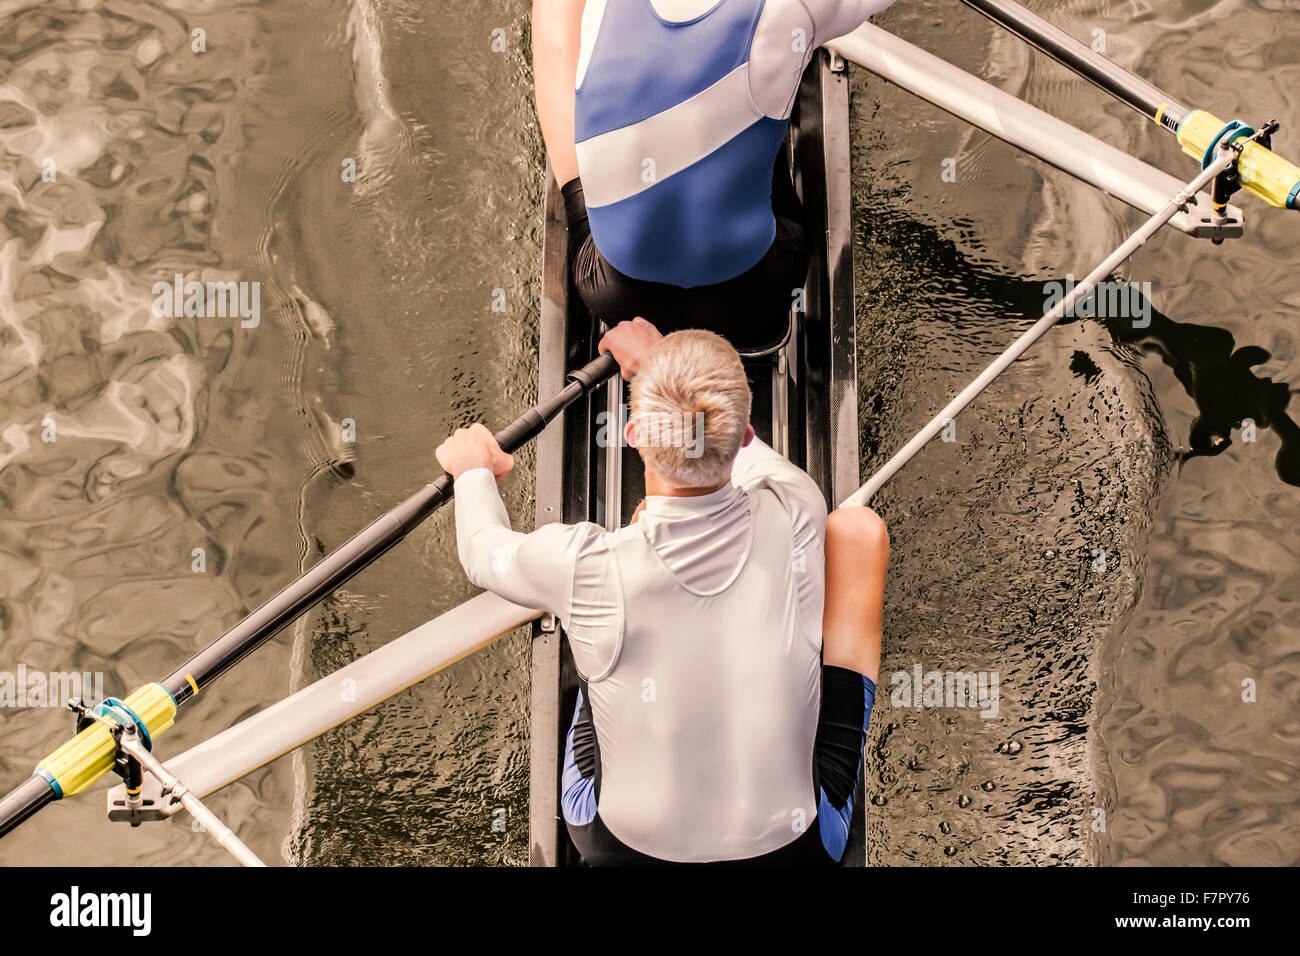 Top view of two athletic competition rower, who stroke their paddle through the water. - Stock Image